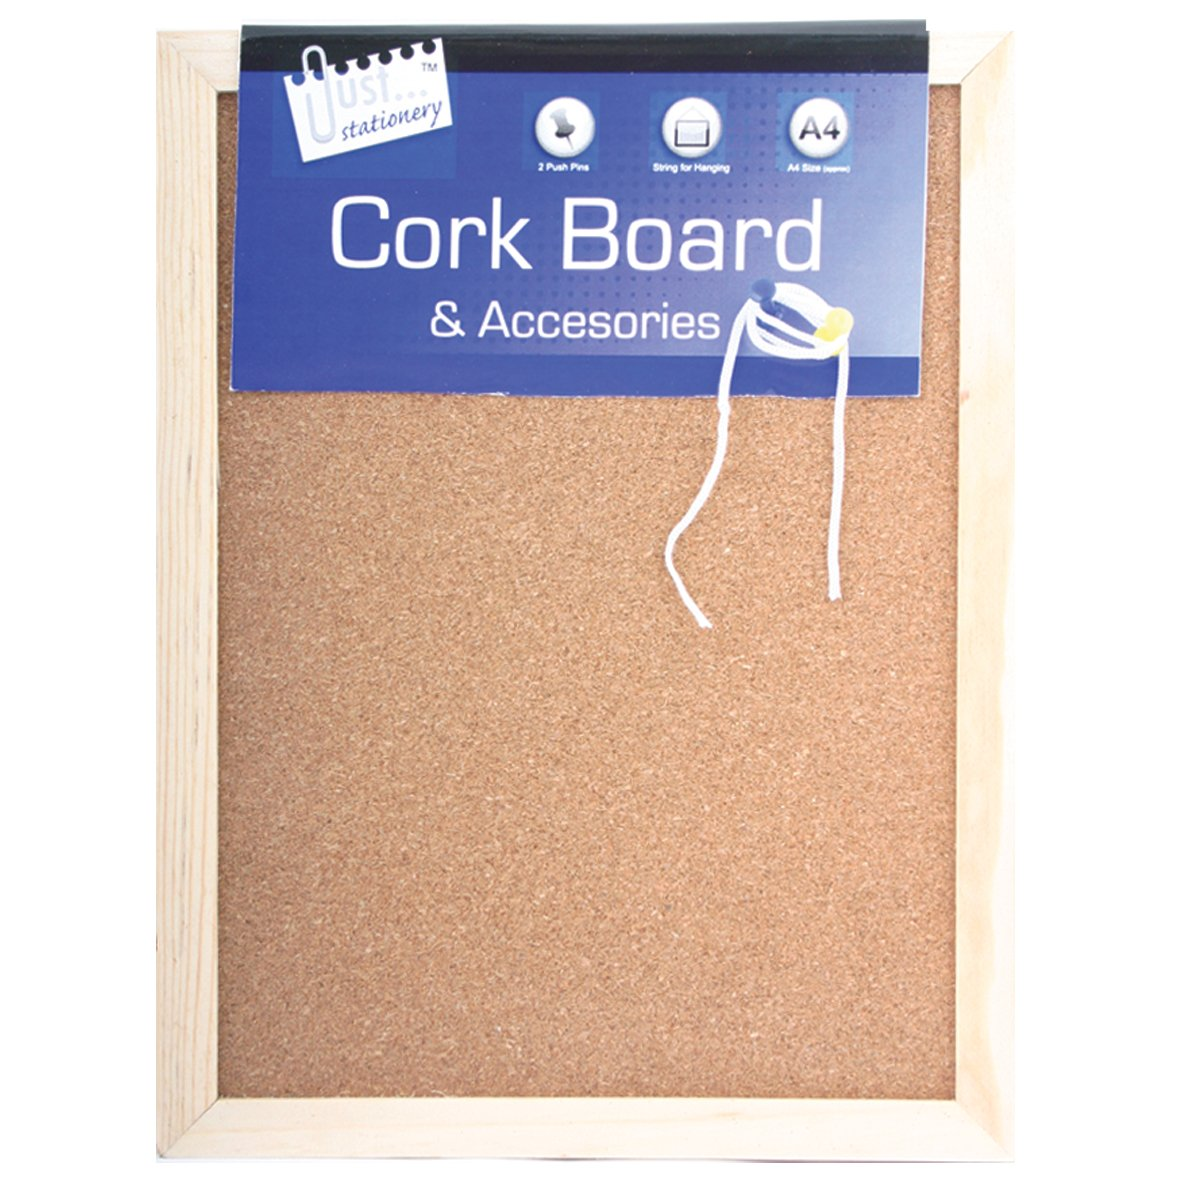 Tallon Just Stationery 285x215mm Cork Board: Amazon.co.uk: Office Products